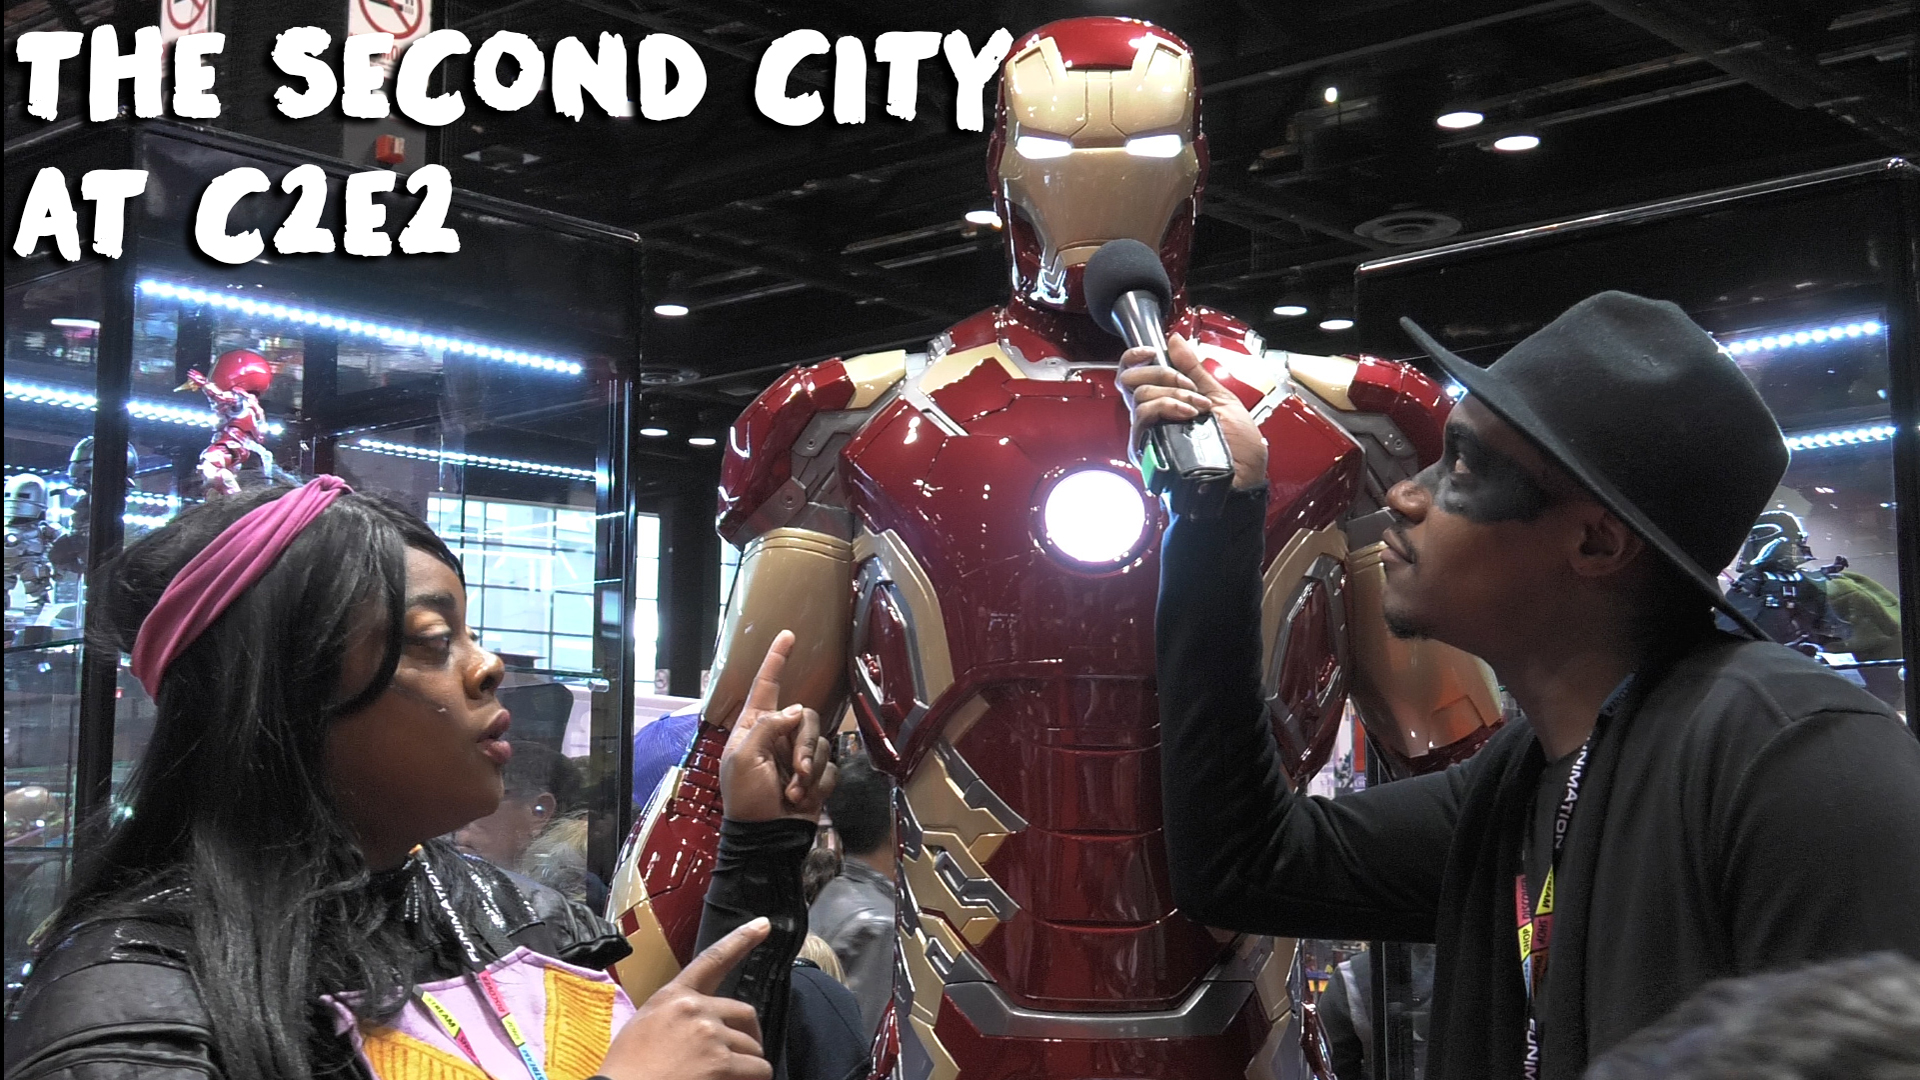 The Second City at C2E2